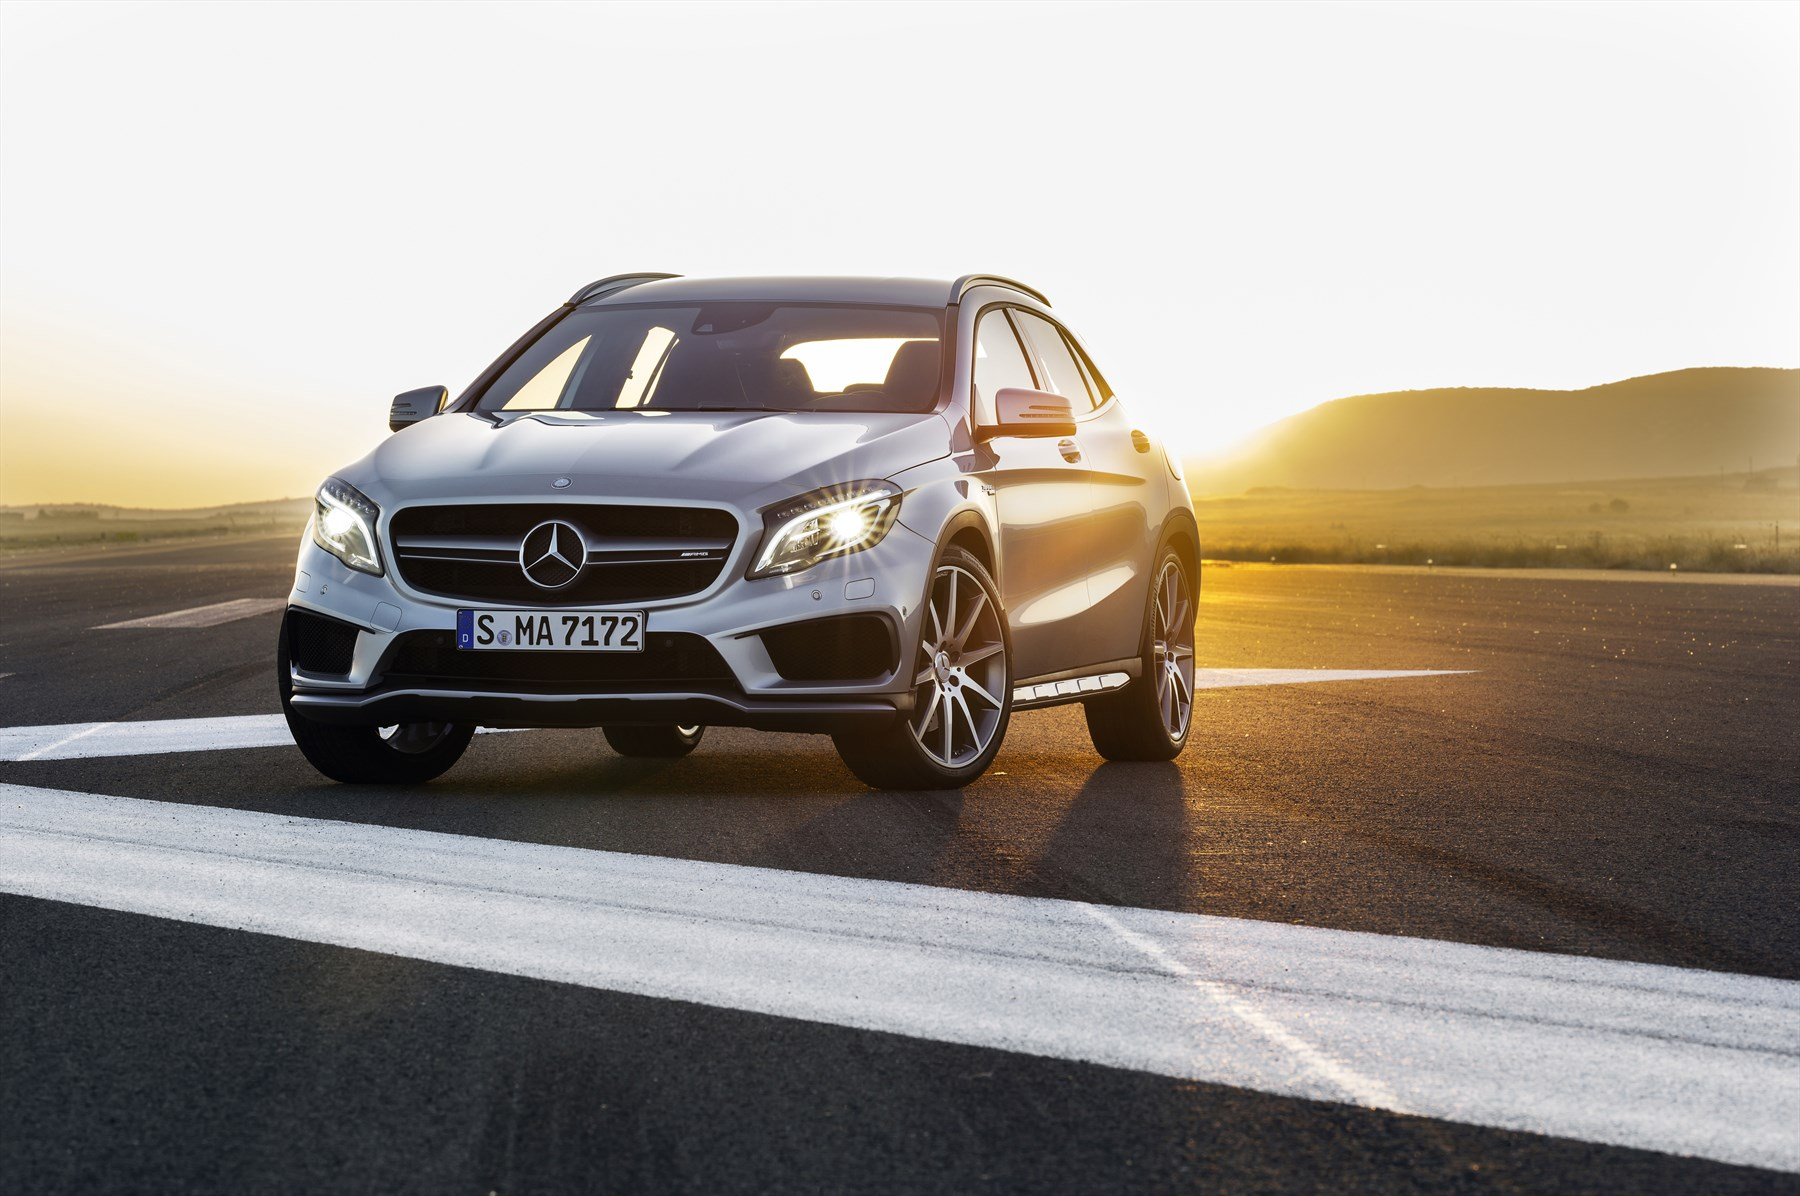 New Mercedes-Benz GLA 45 AMG Unleashed: Latest News